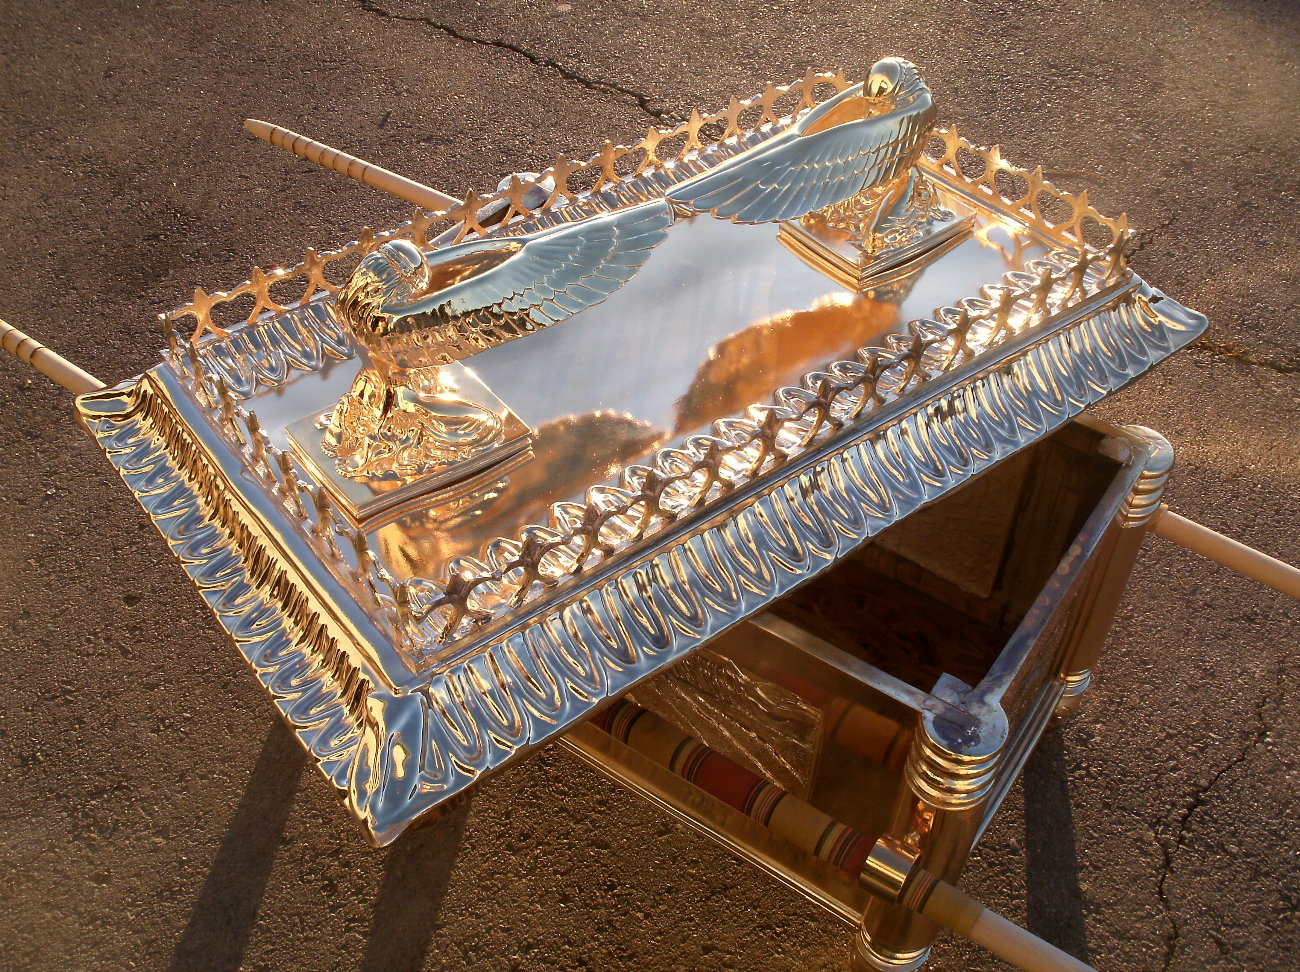 The ark of the covenant found 2010